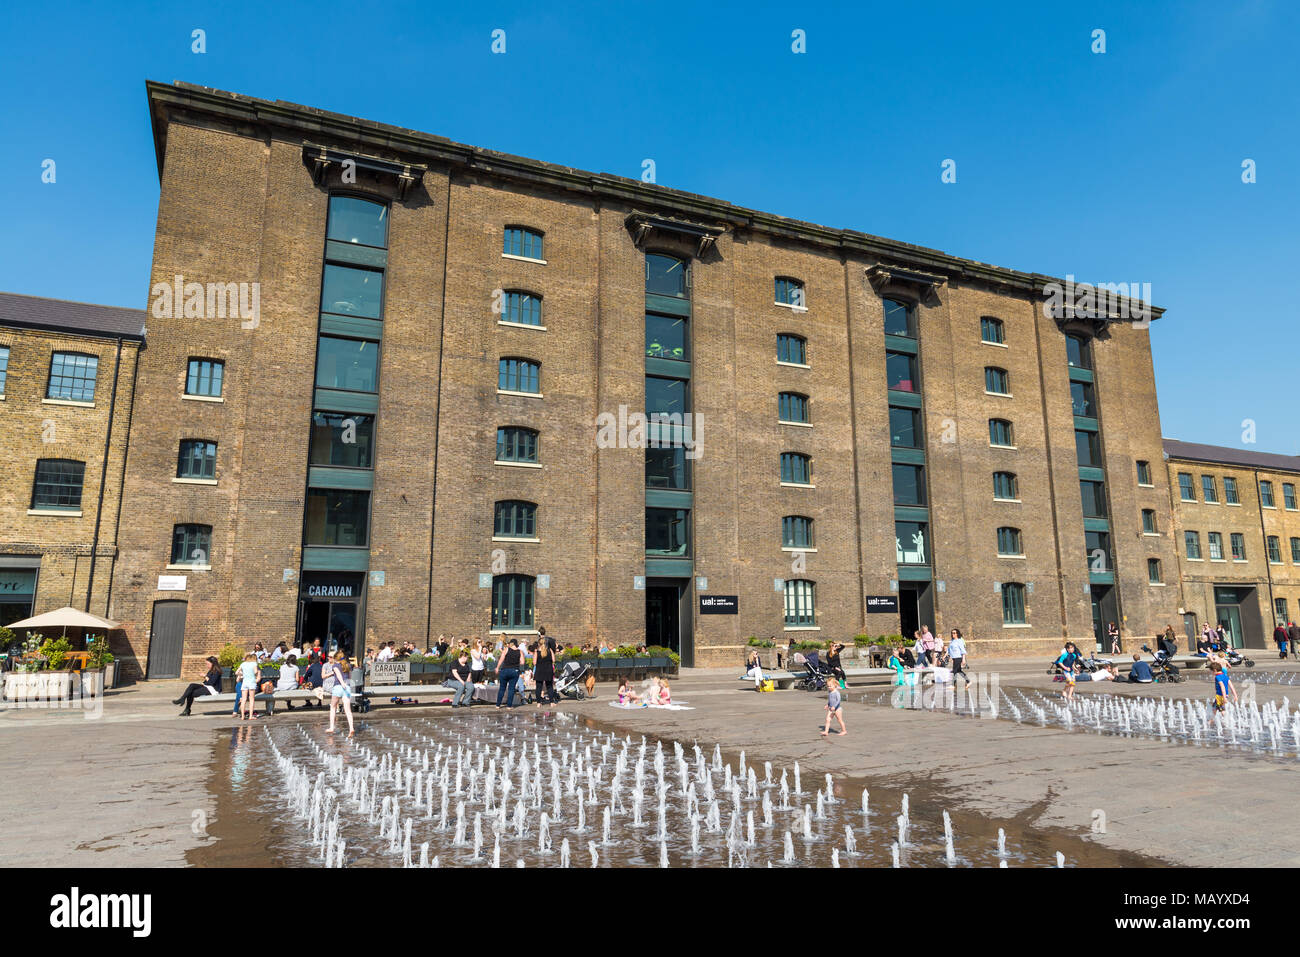 Water fountain outside Central St Martins in Granary Square, King's Cross, London, UK - Stock Image